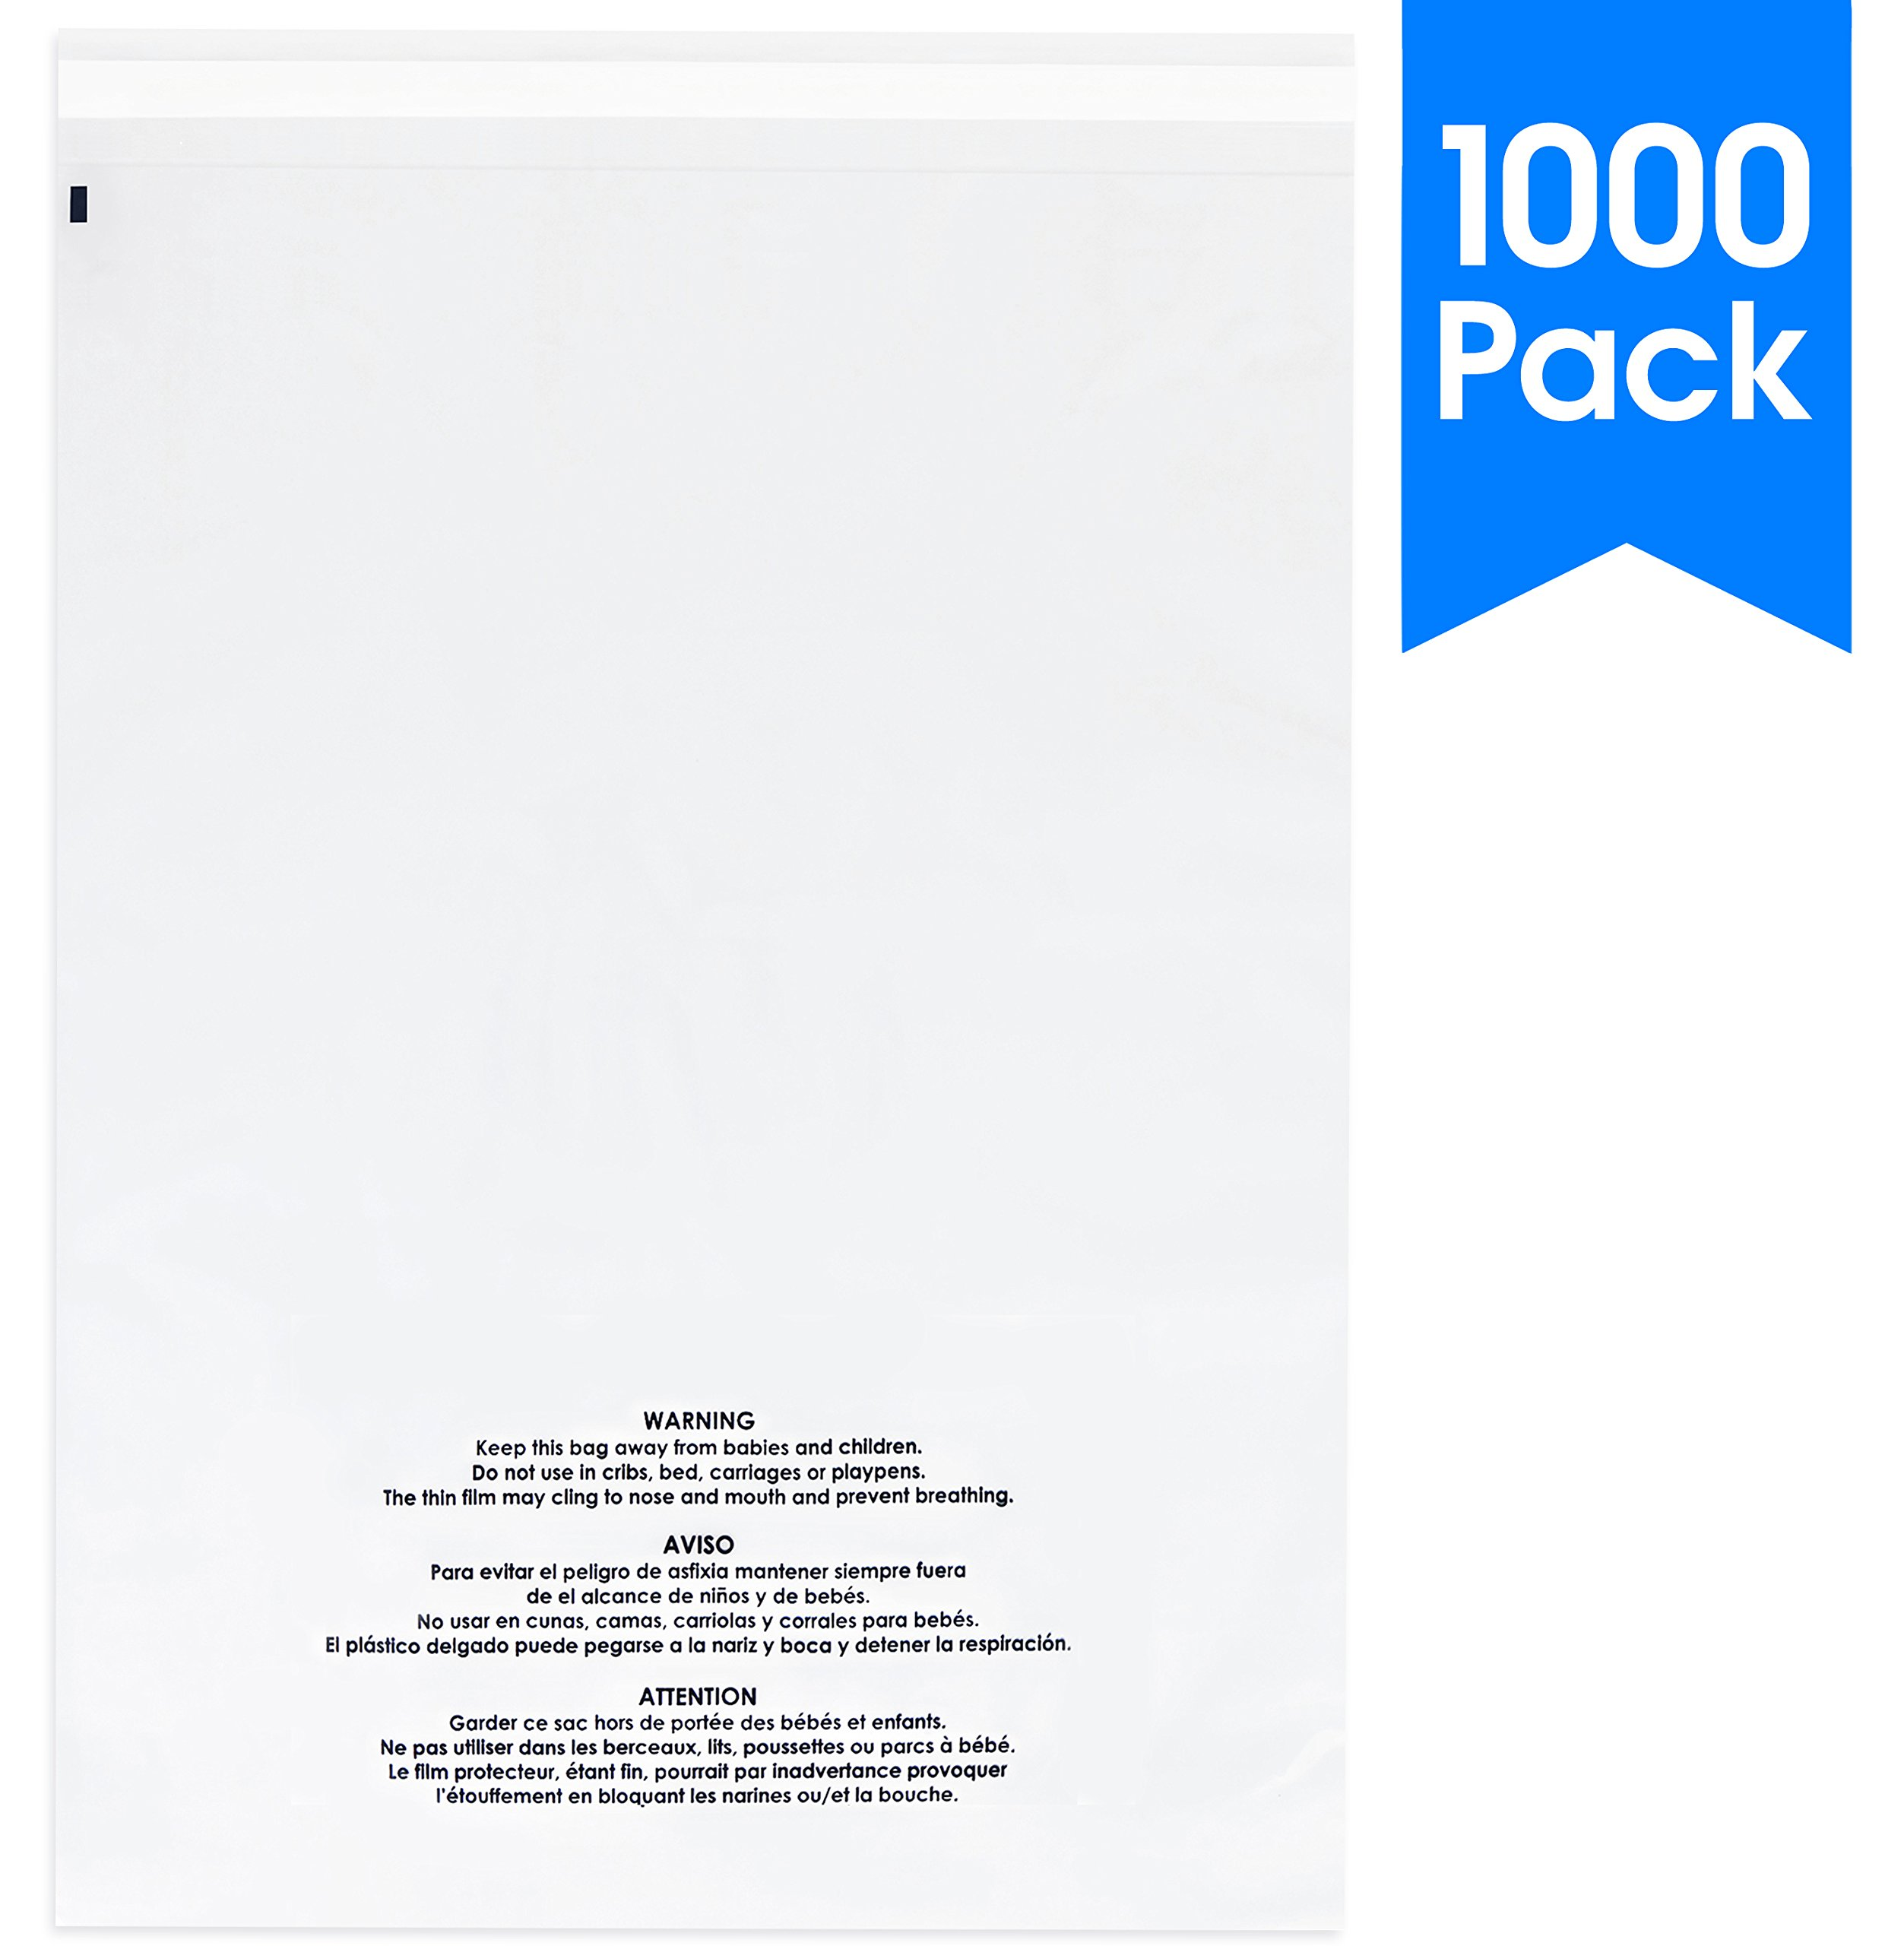 1000 Count - 9 X 12 Self Seal 1.5 Mil Clear Plastic Poly Bags with Suffocation Warning - Permanent Adhesive by Spartan Industrial (More Sizes Available)